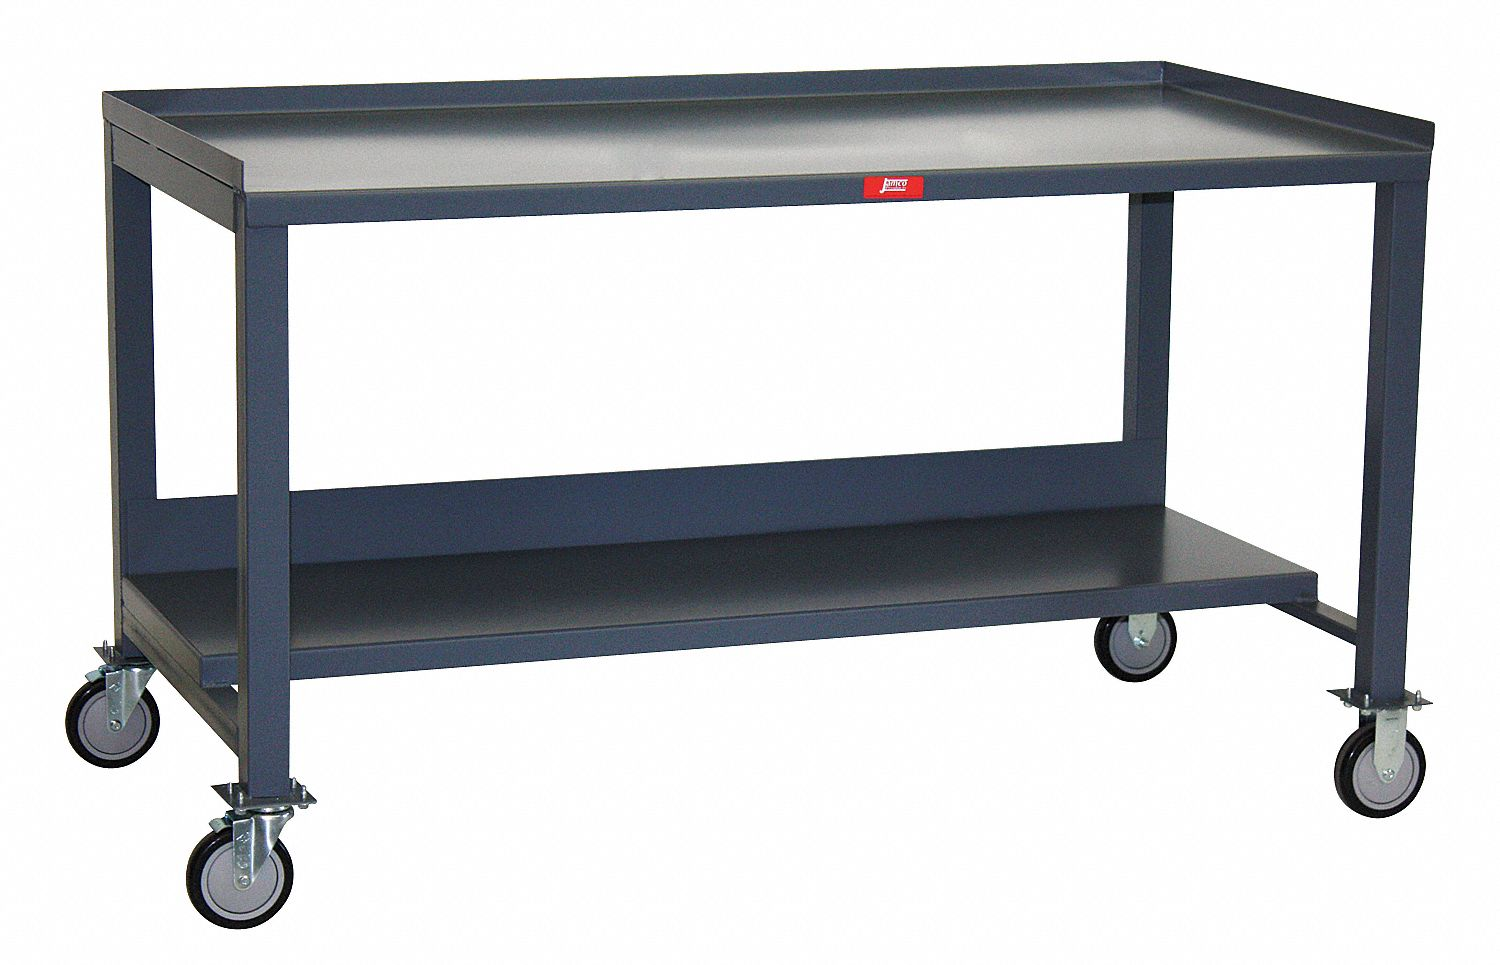 Workbench, Steel, 36 in Depth, 35 in to 39 in Height, 60 in Width, 1,400 lb Load Capacity